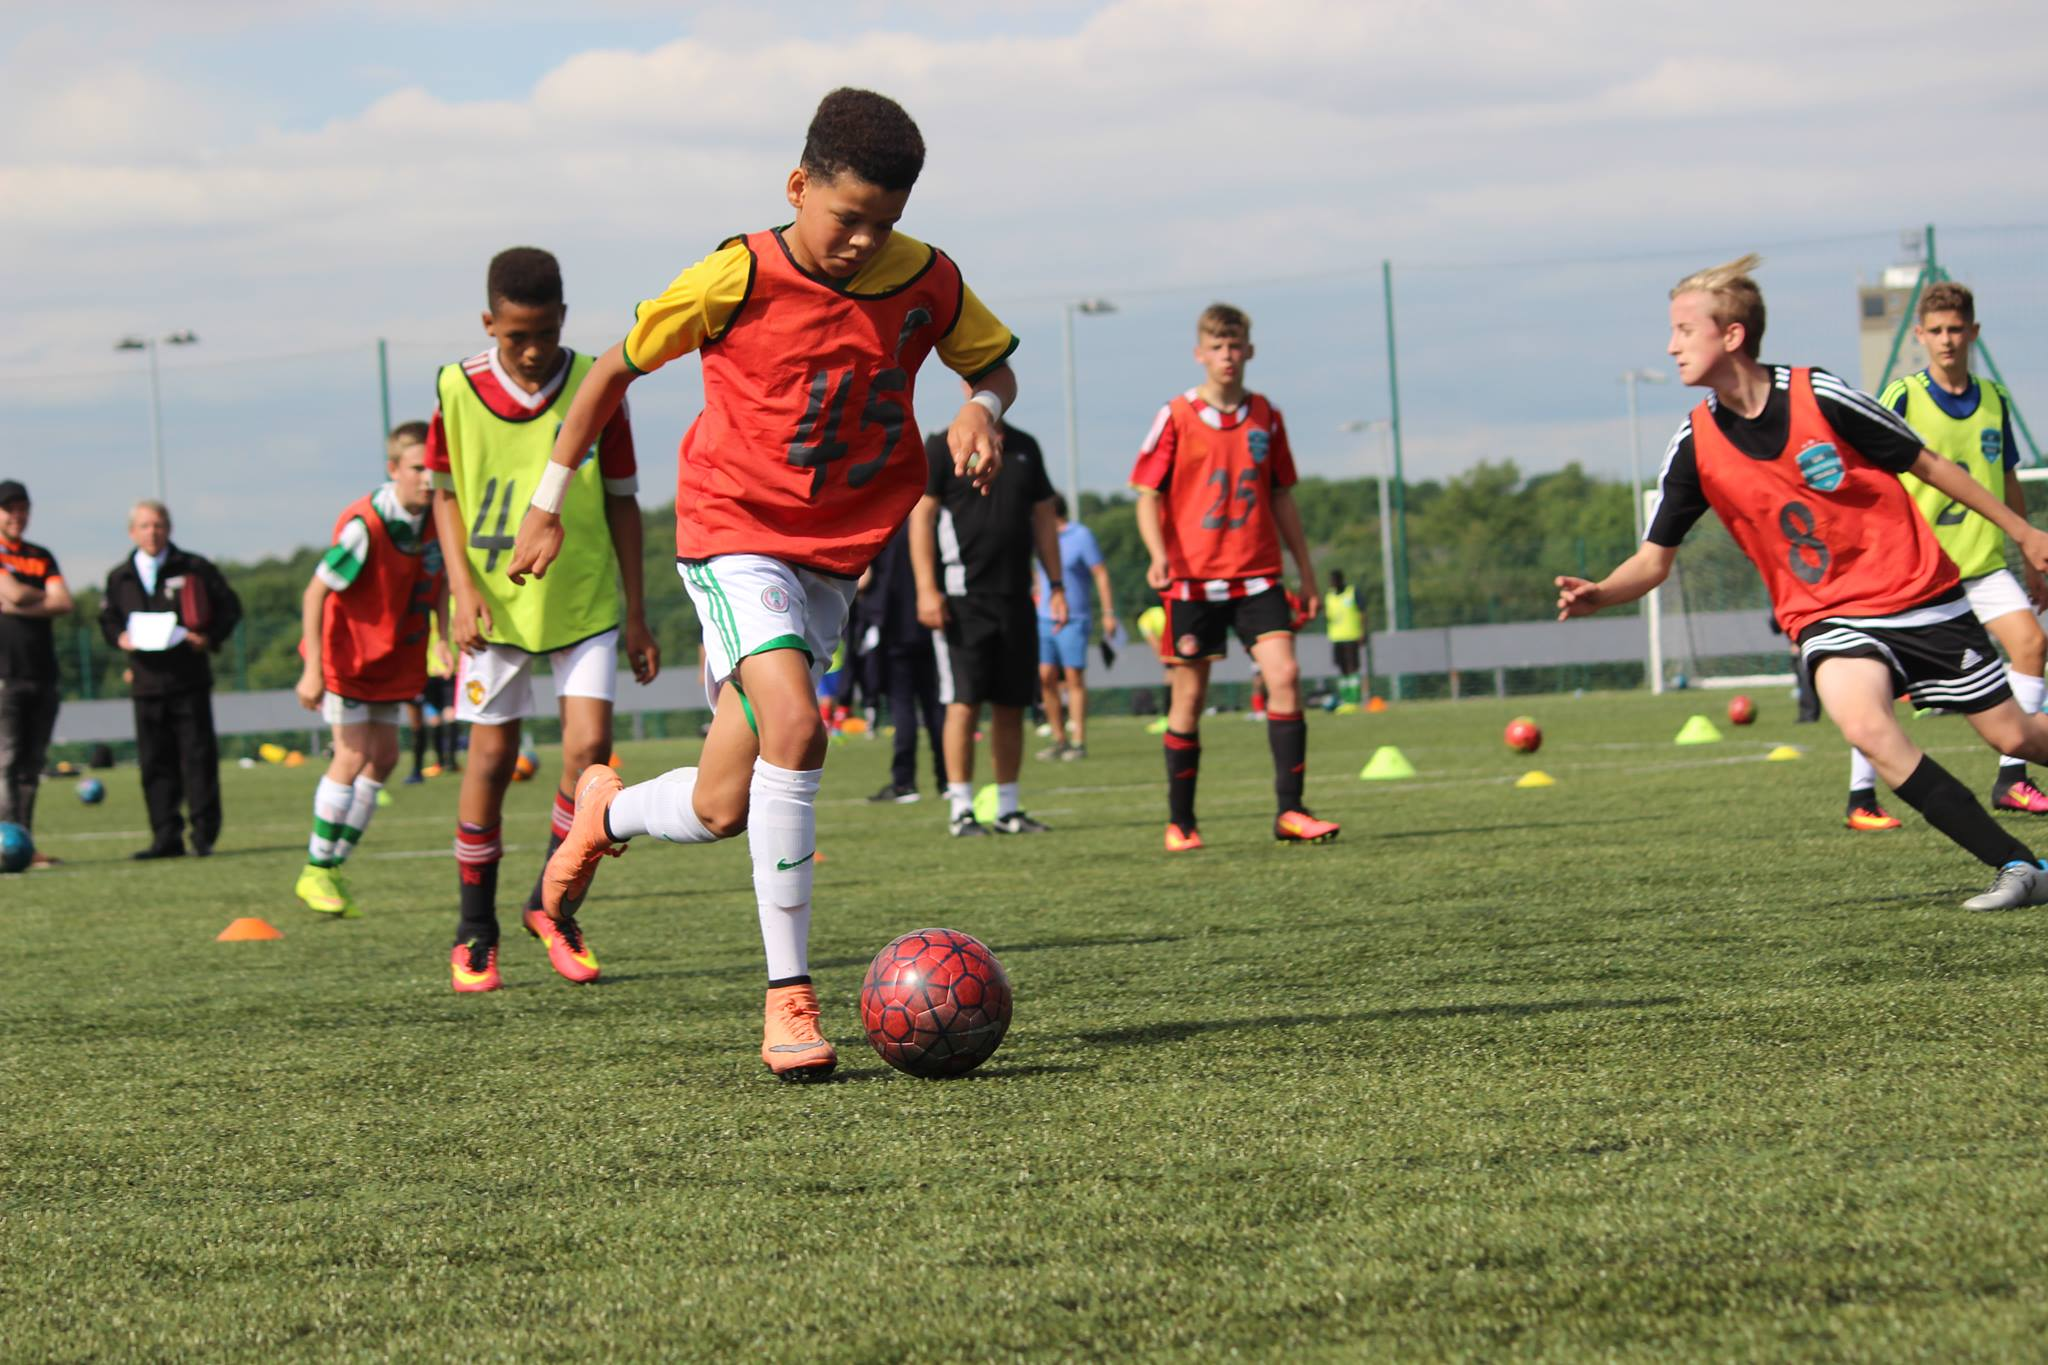 Manchester Football Trial May 28th - PM -  Ages 10 to 14. Hurry - 2 spaces left at this price!